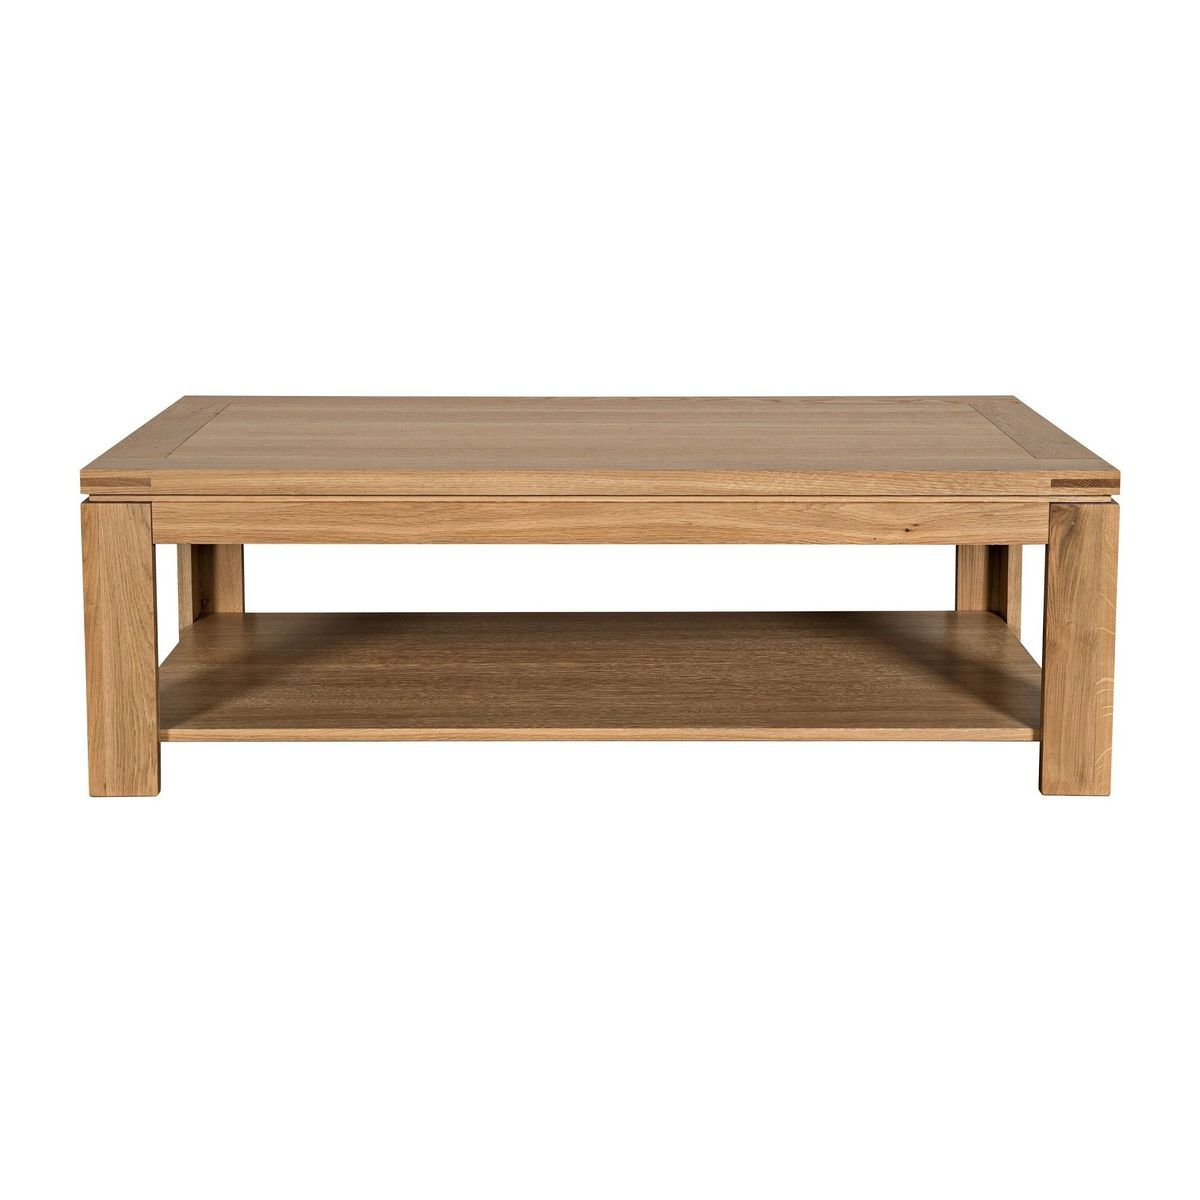 Table Basse Moderne Boston Bois Chene Clair Massif Chene Clair Hellin Depuis 1862 La Redoute Table Dining Bench Furniture